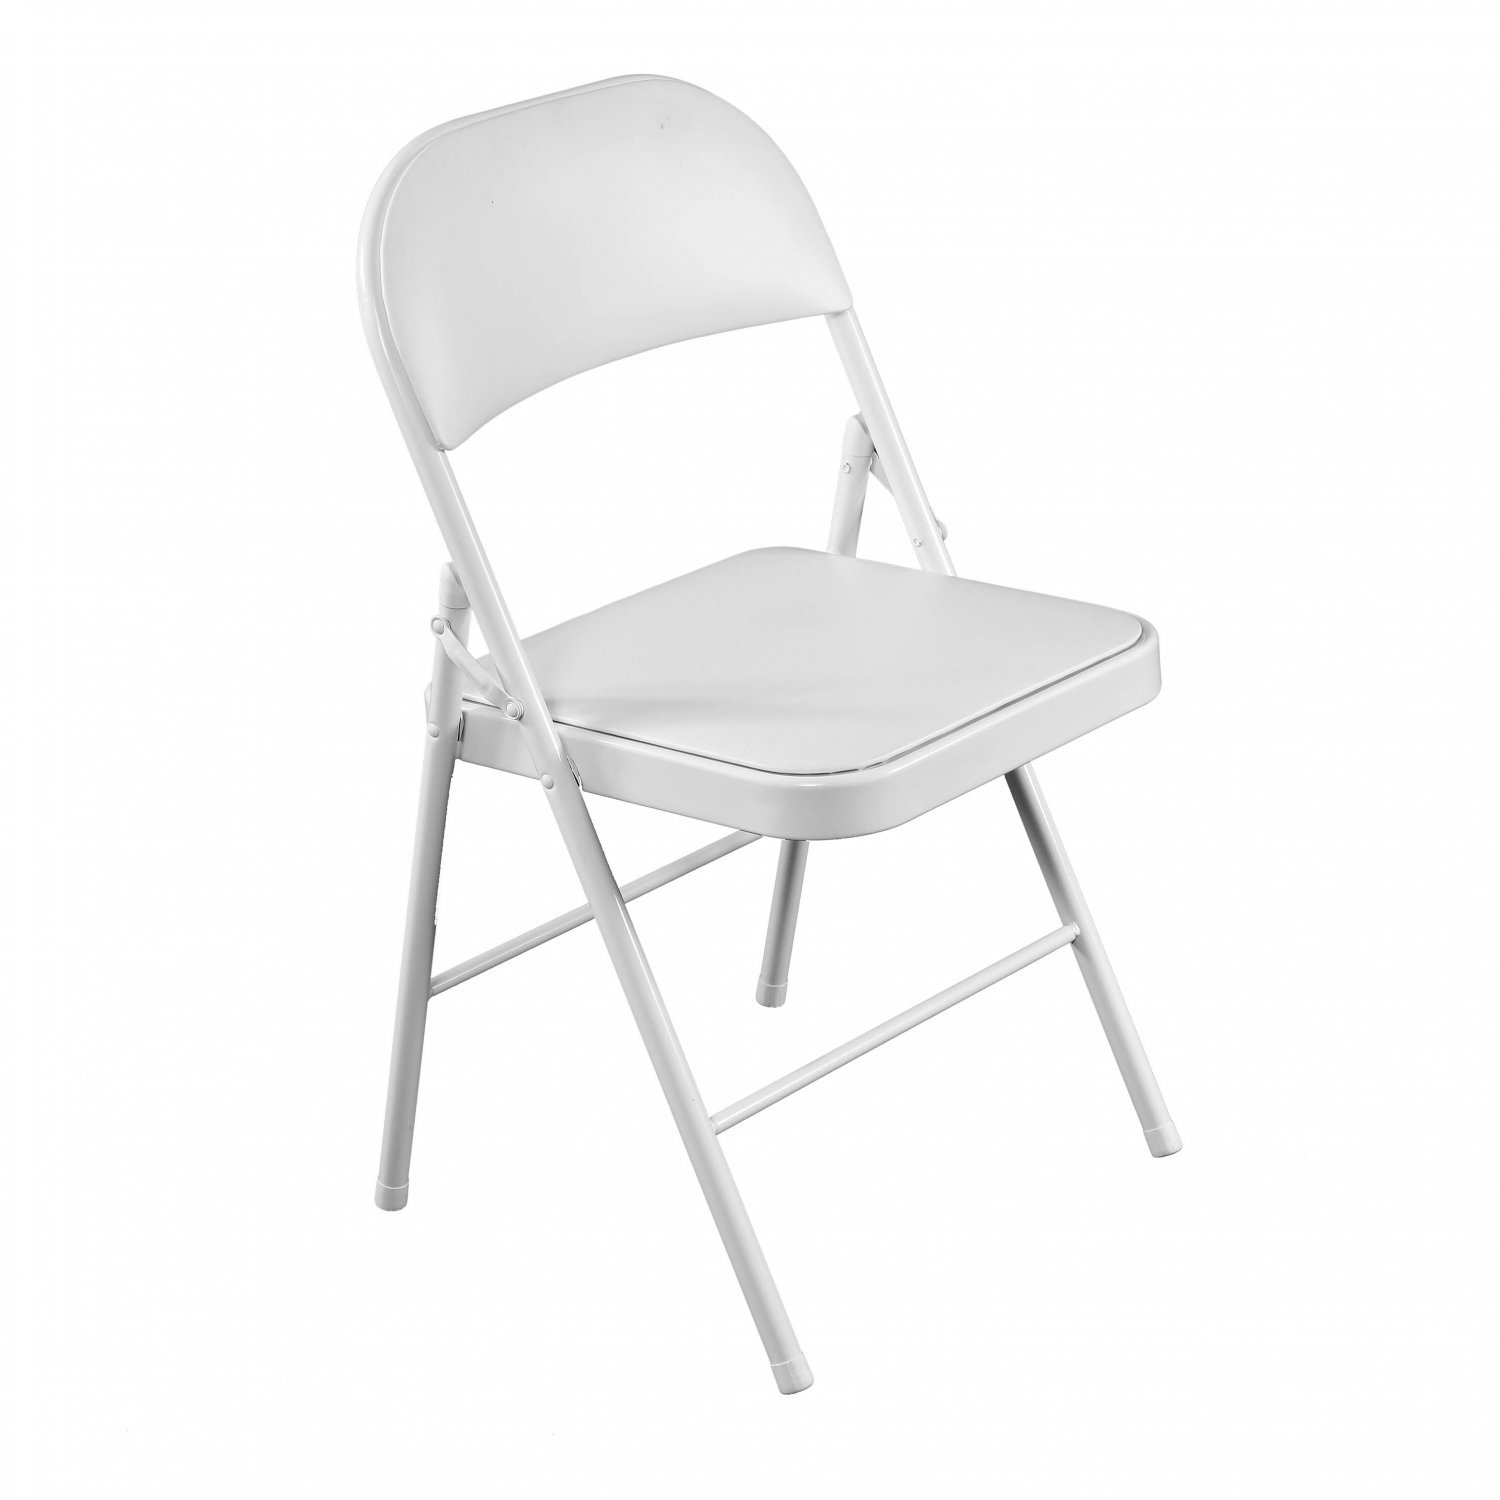 Heavy Duty White Padded Folding Metal Desk Office Chair Seat 19 99 Oypla Stocking The Very Best In Toys Electrical Furniture Homeware Garden Gifts And Much More